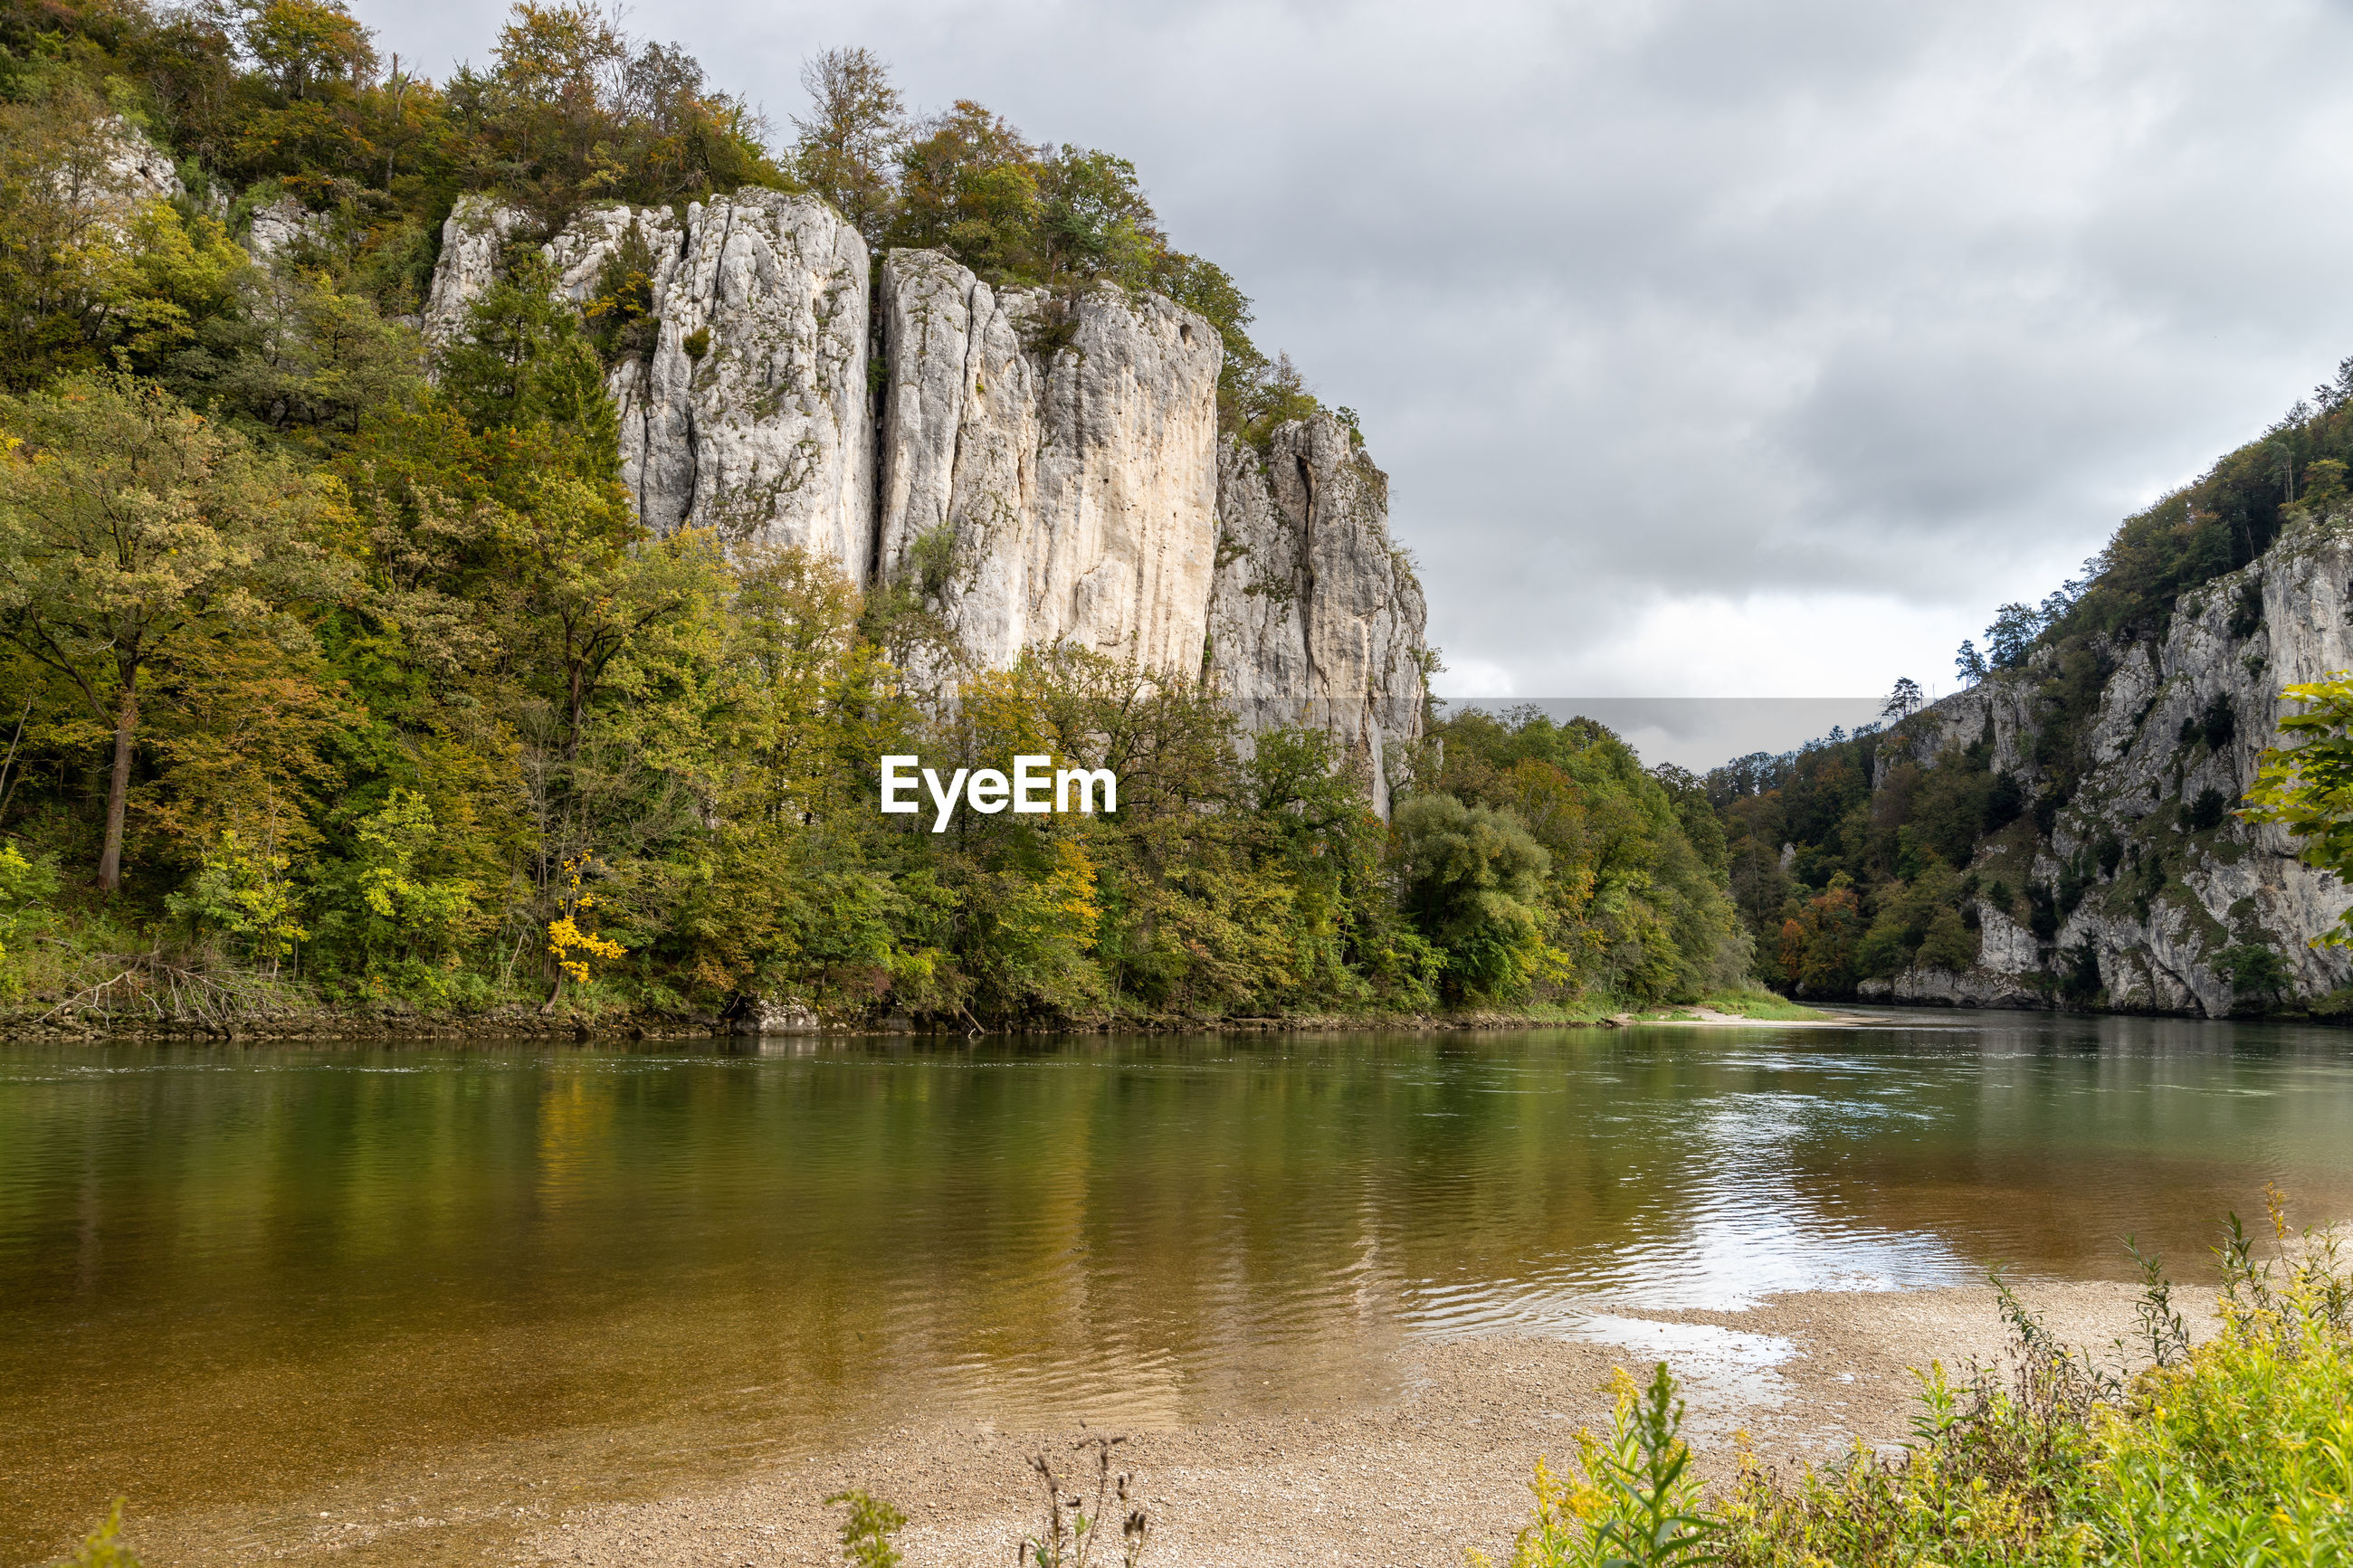 Nature reserve at danube river breakthrough nearby kelheim with limestone rock formations